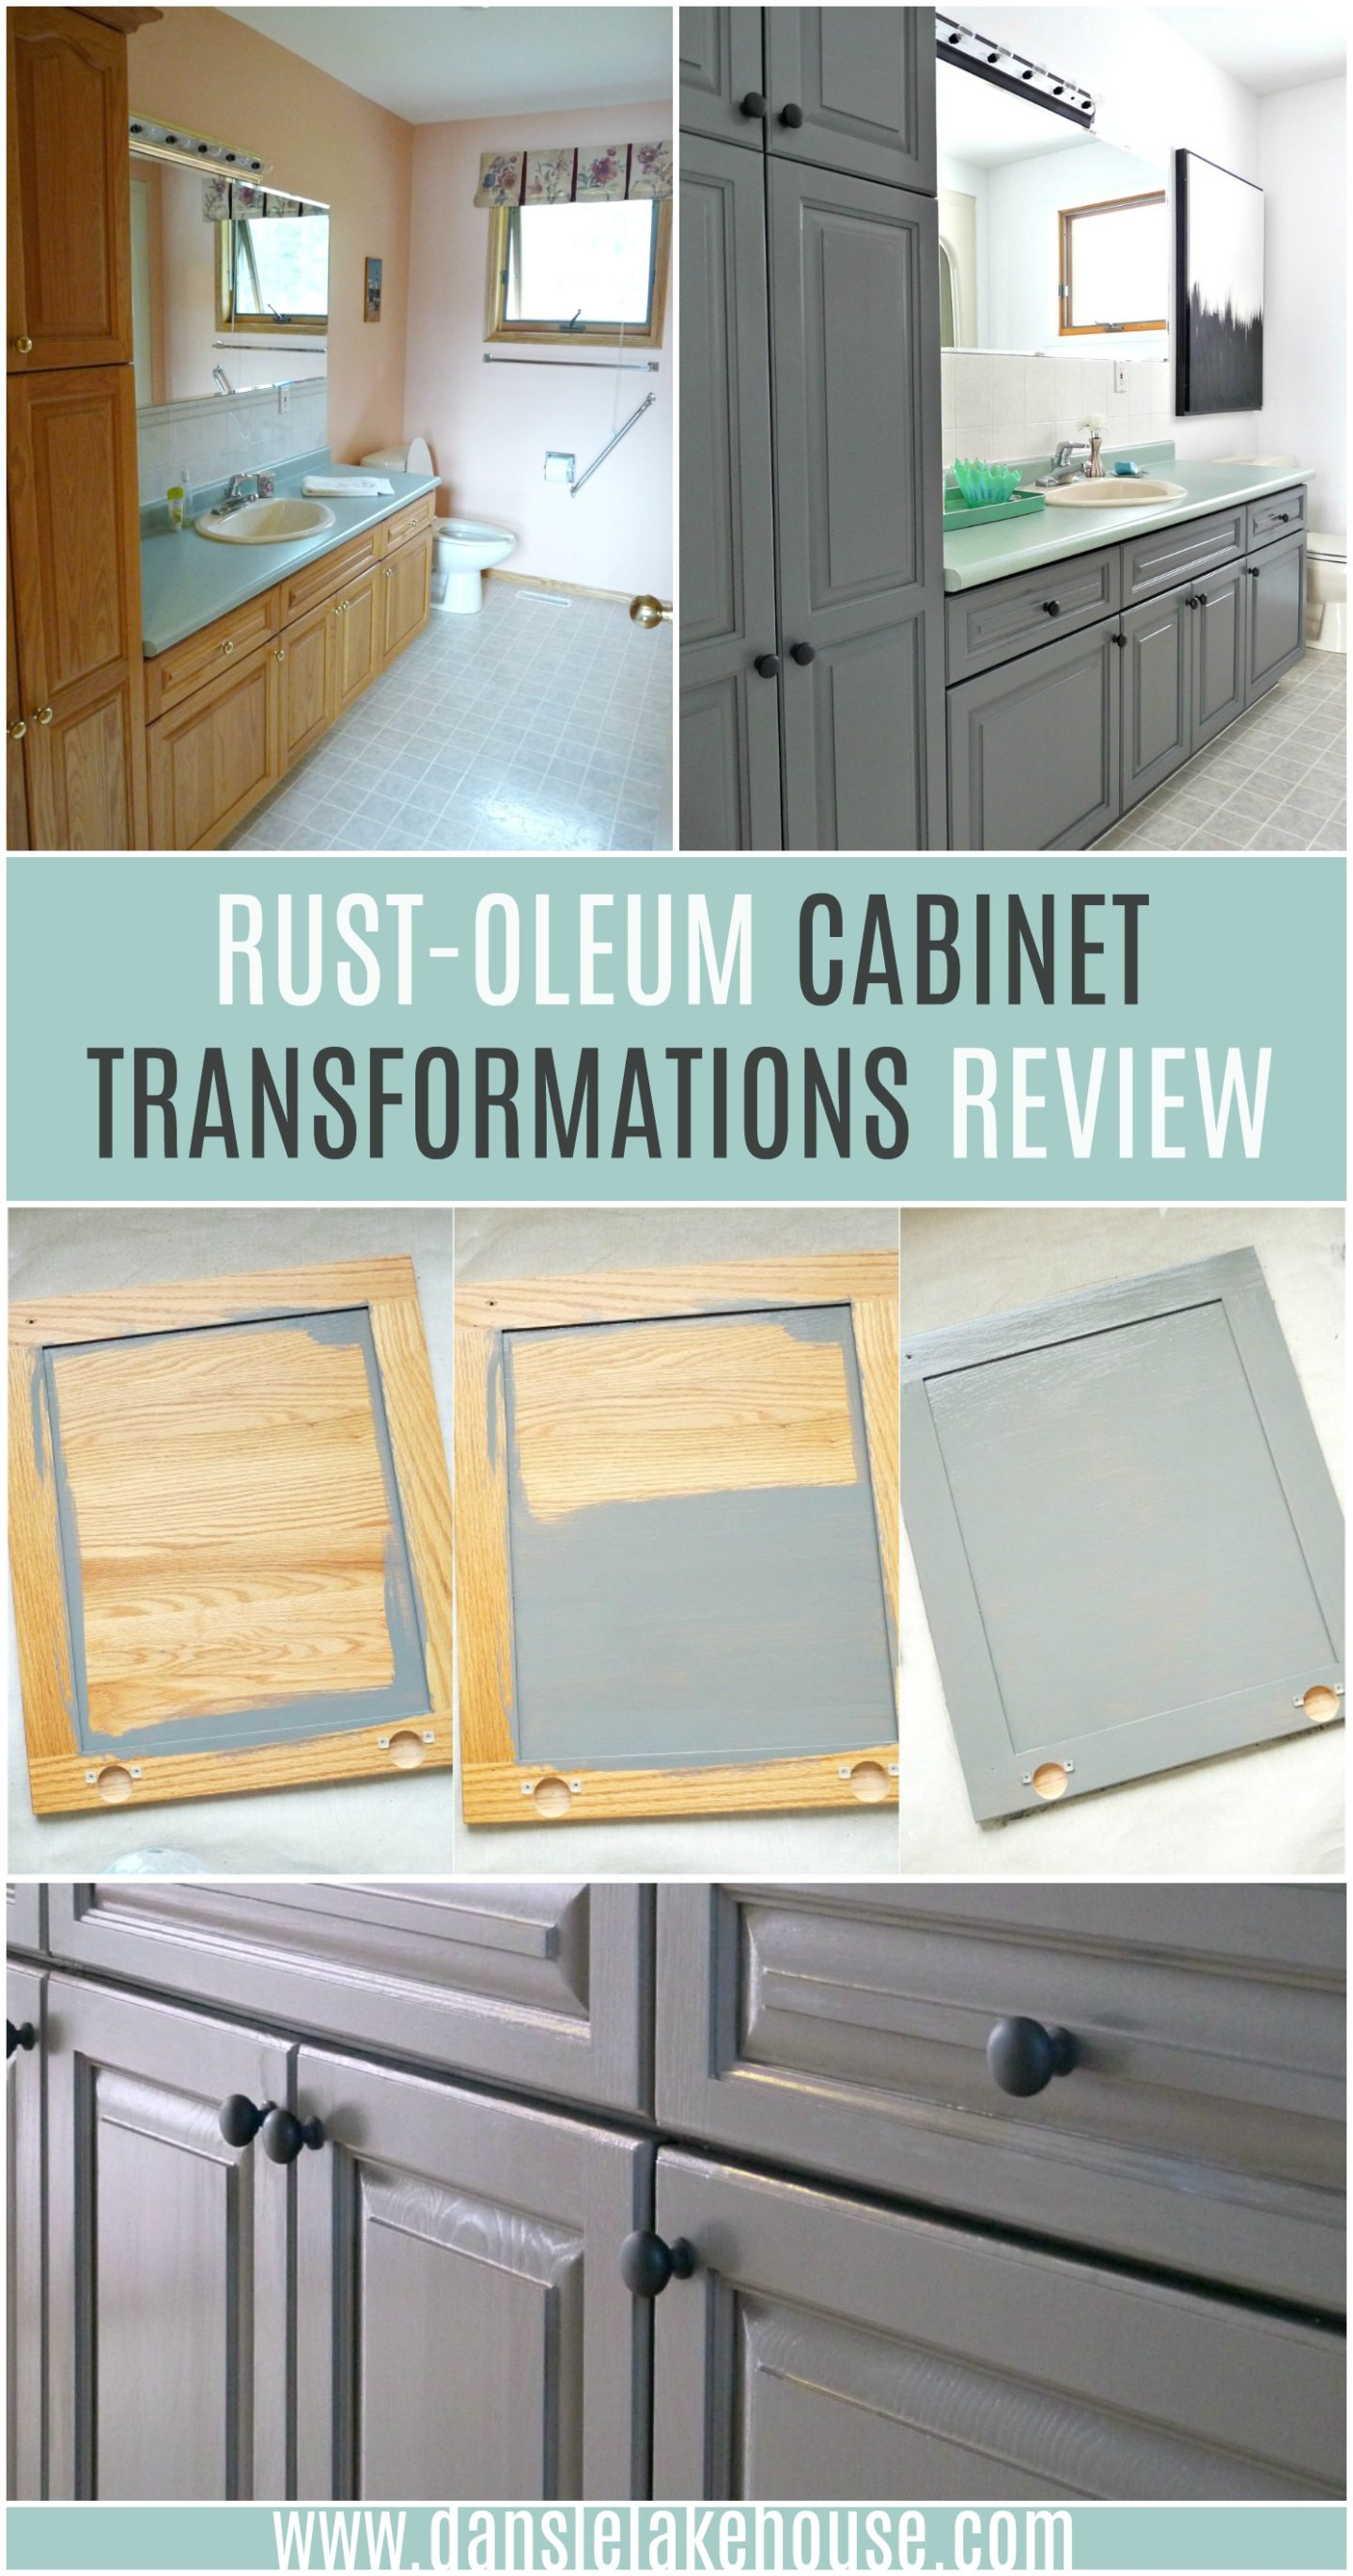 How To Refinish Bathroom Cabinets Easily Rust Oleum Cabinet Transformations Review Dans Le Lakehouse